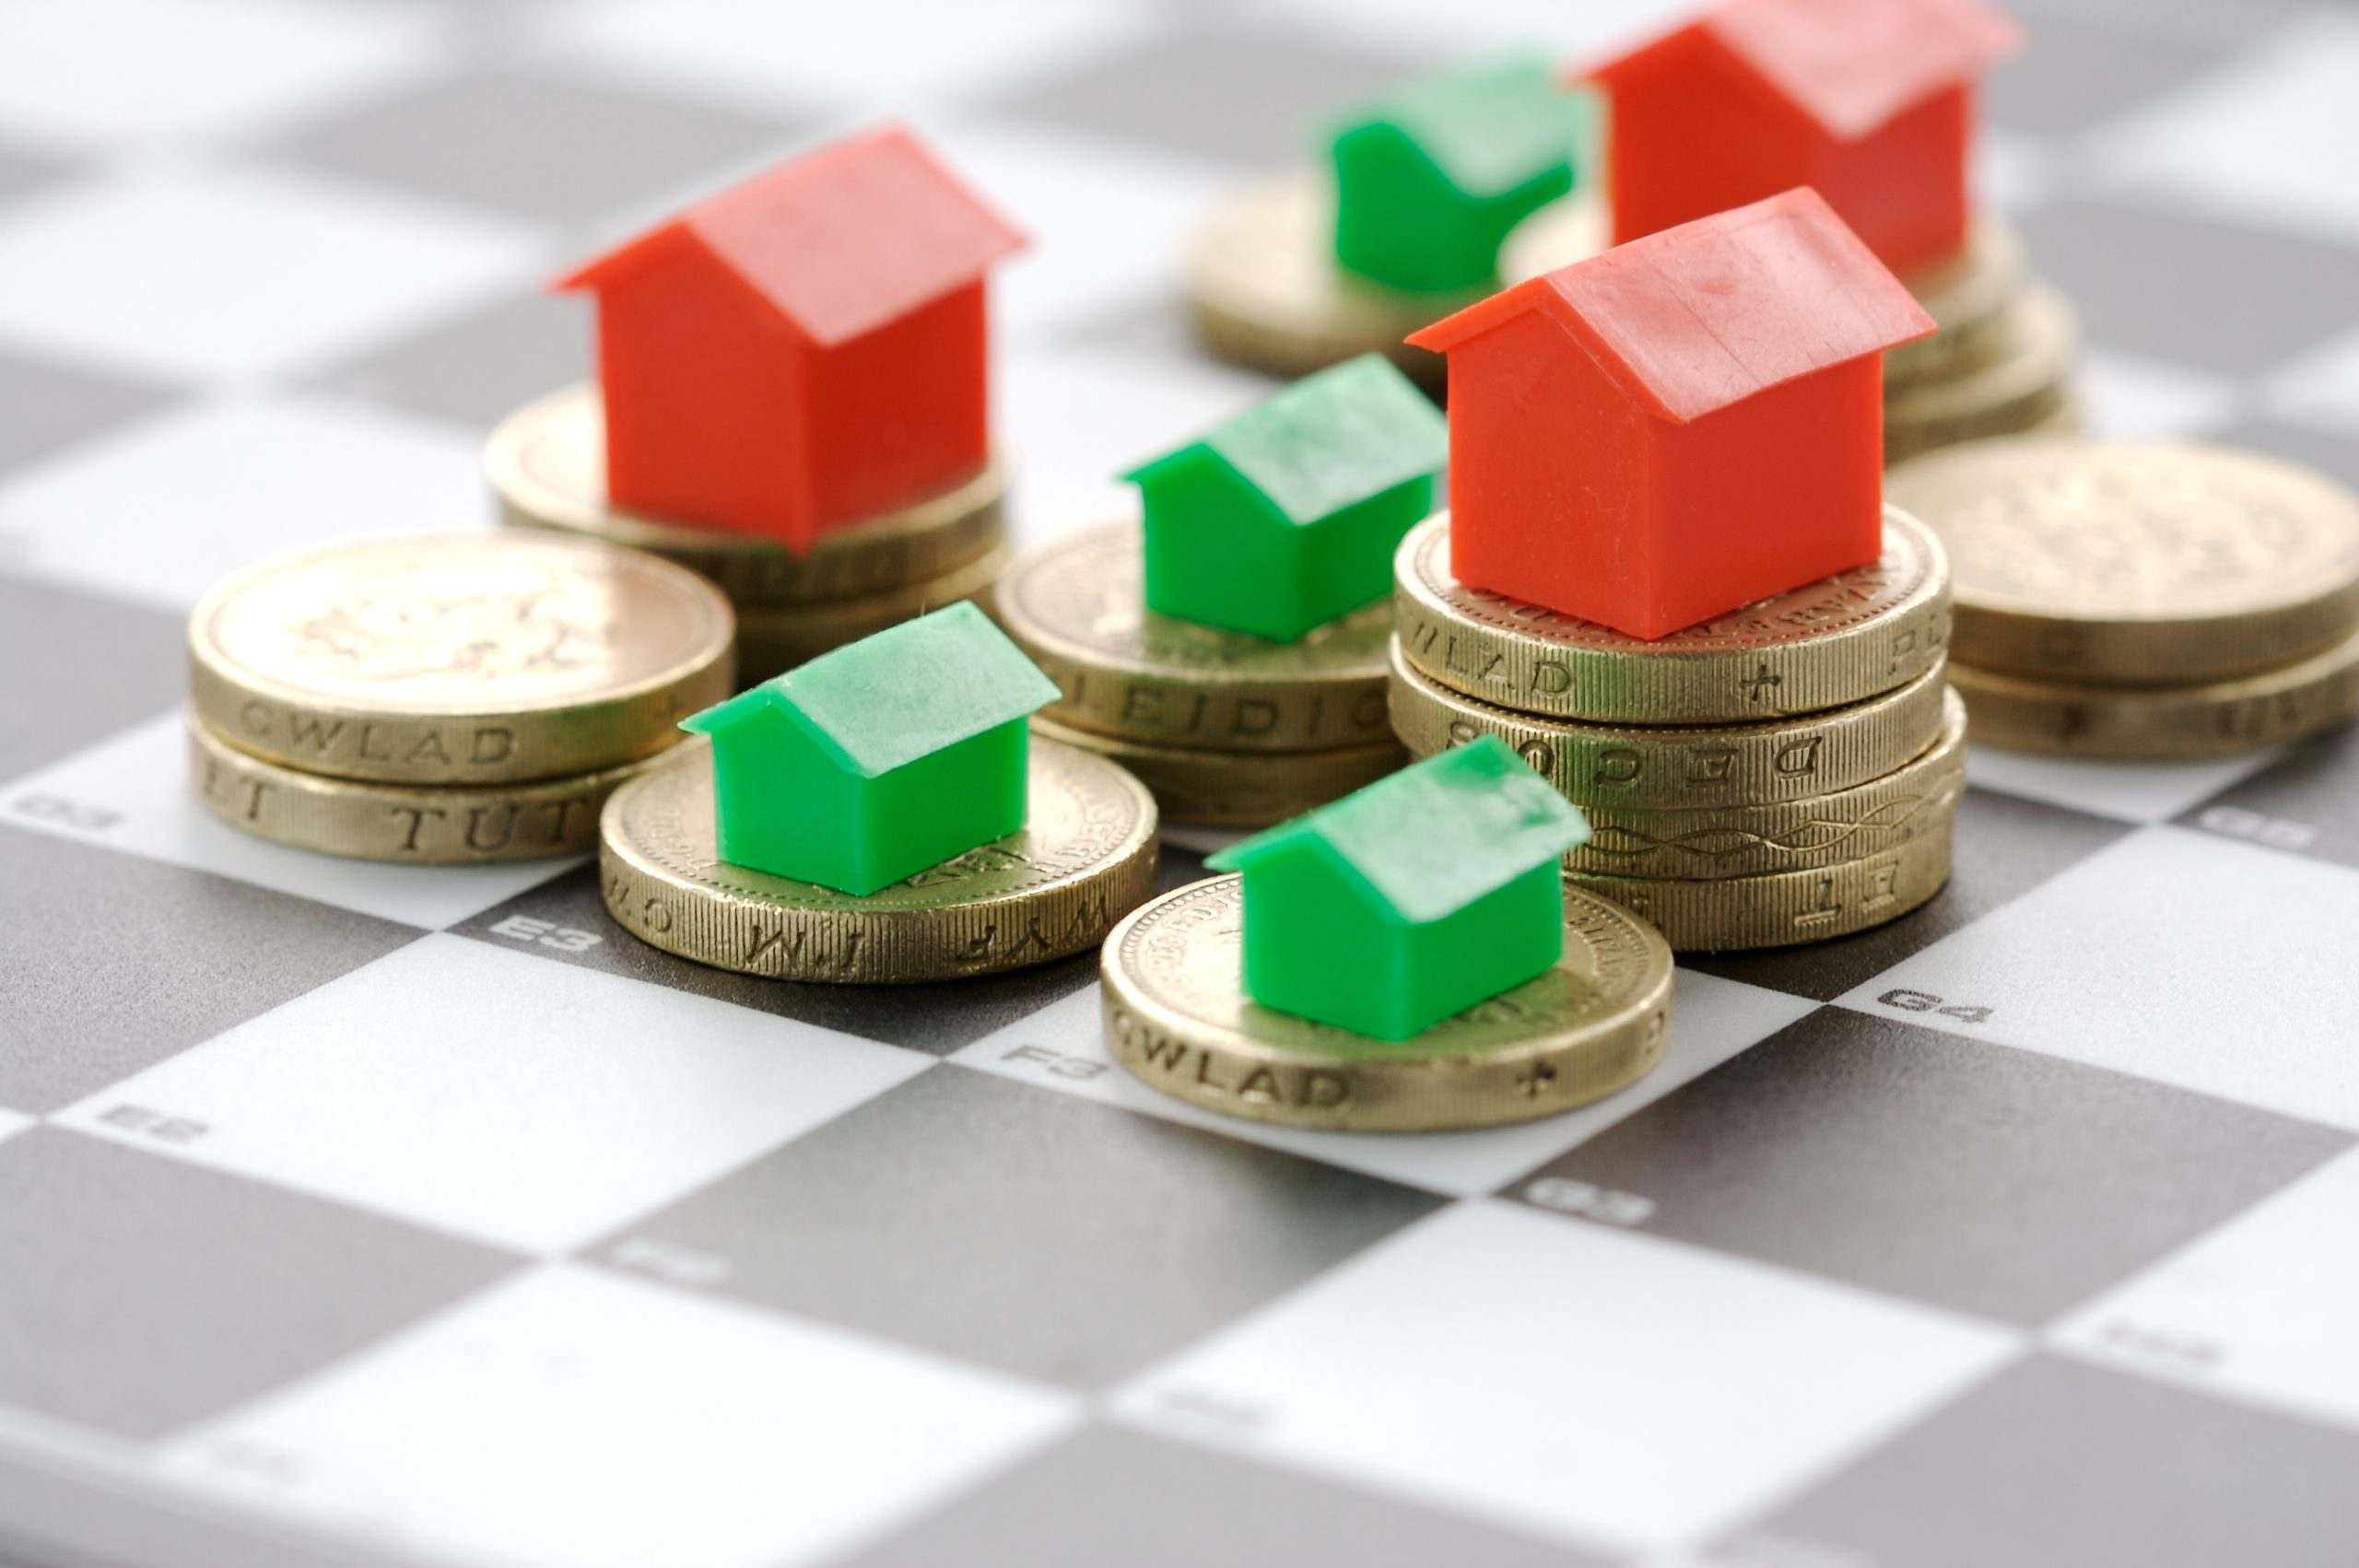 UK property investment: buy-to-let, short-term let or build-to-rent?